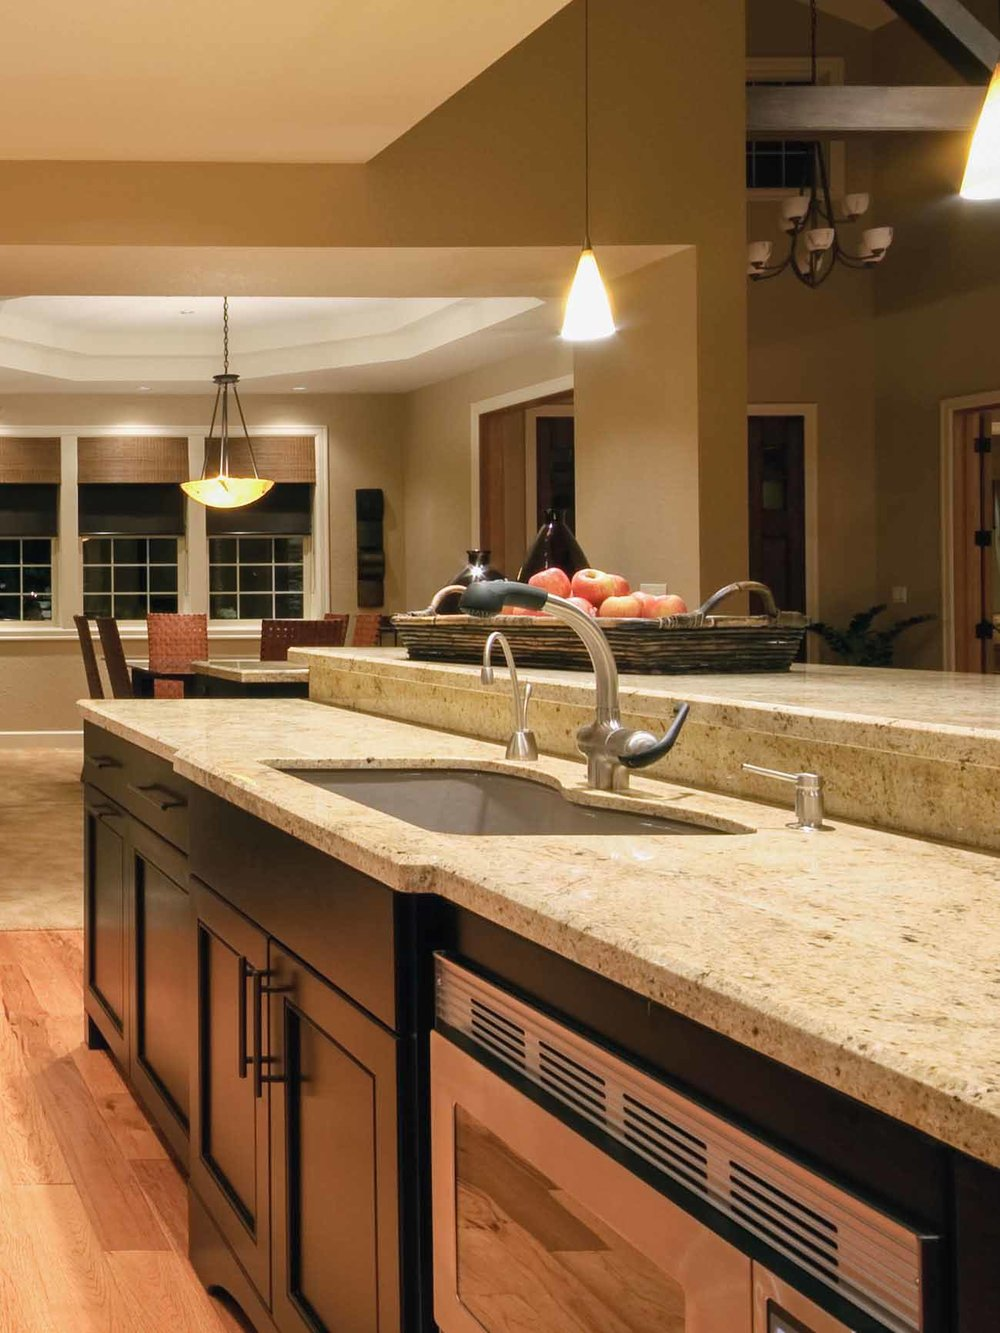 Kitchen Remodel - New fixtures, sinks and faucets, garbage disposals, water filtration system, hot water dispensers, dishwasher hookups, gas range hookups.